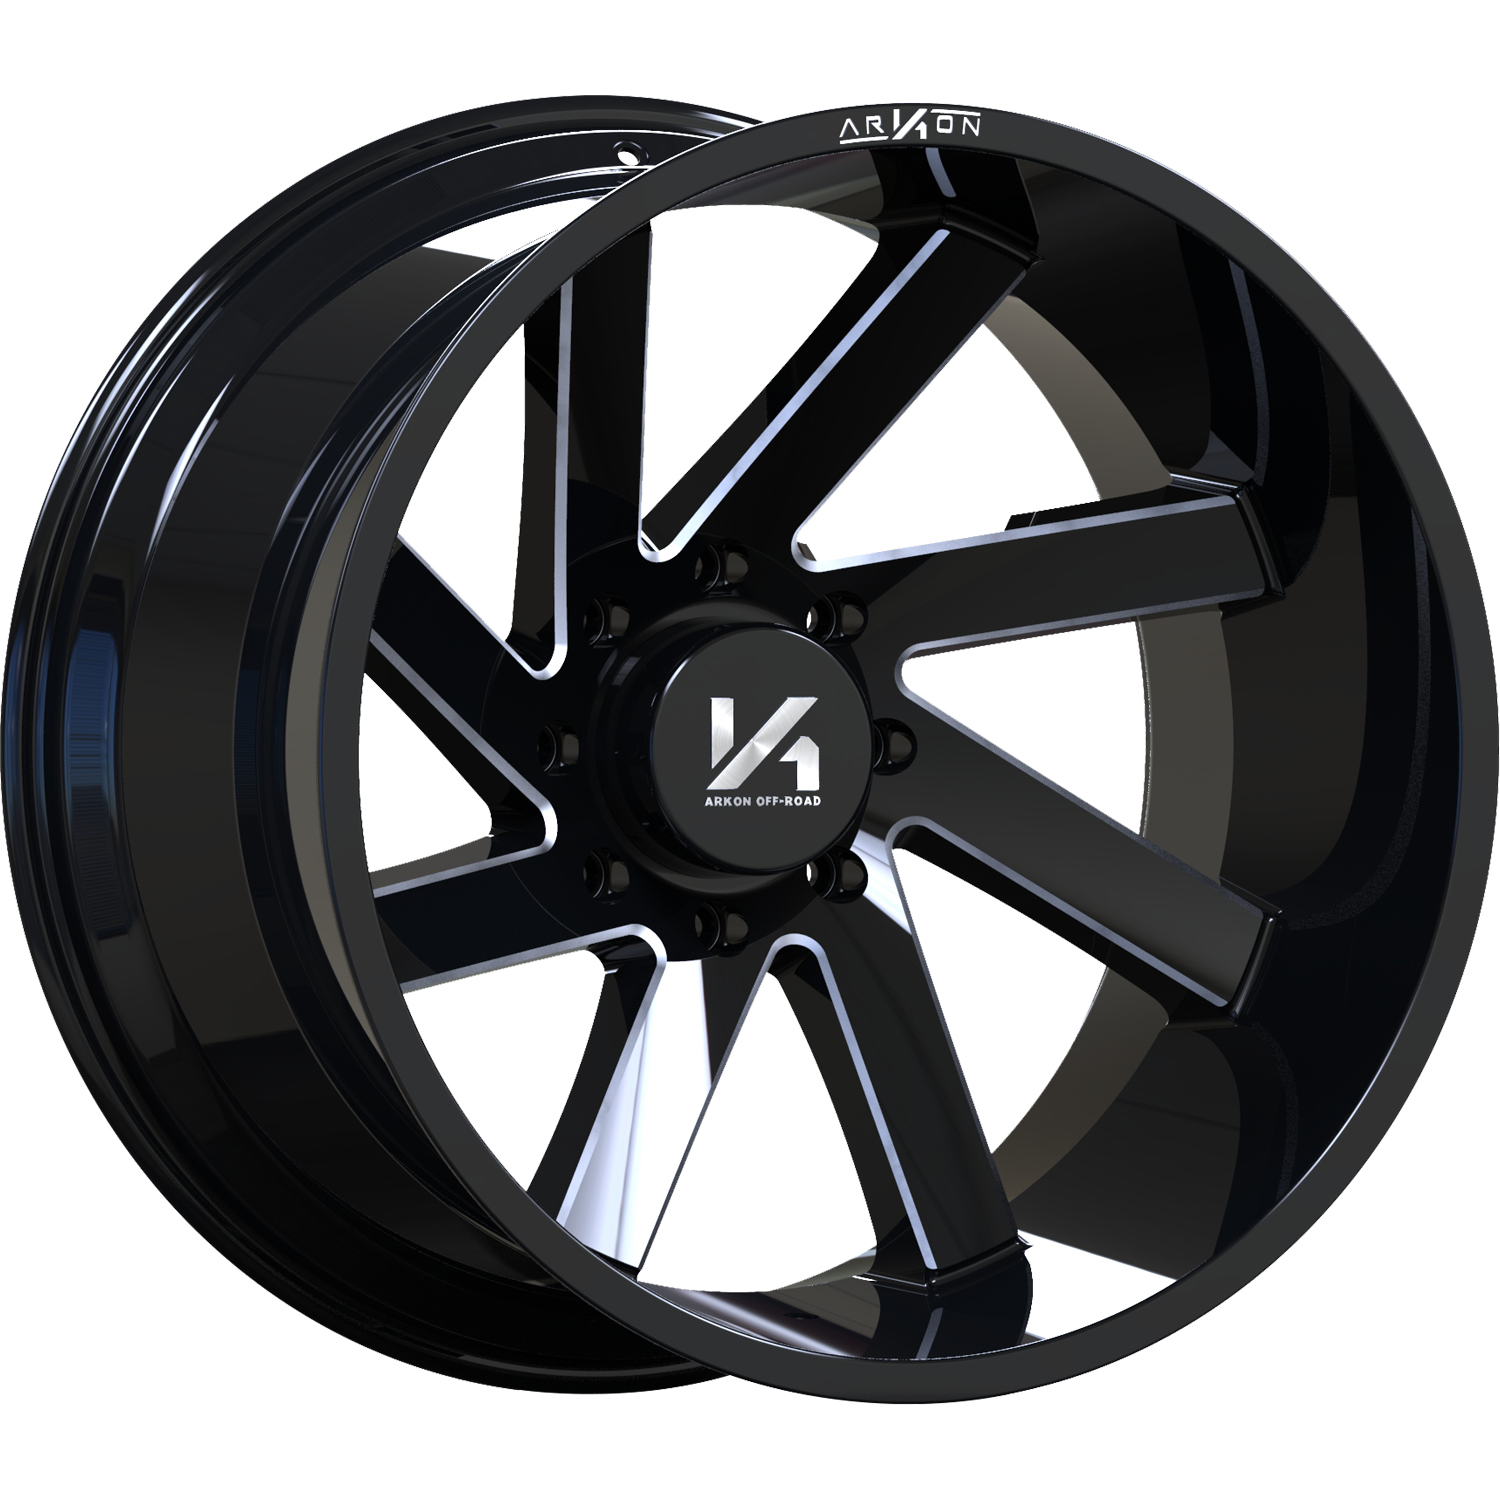 ARKON OFF-ROAD Lincoln Gloss Black with Milled Spoke Edges 20x12 -51